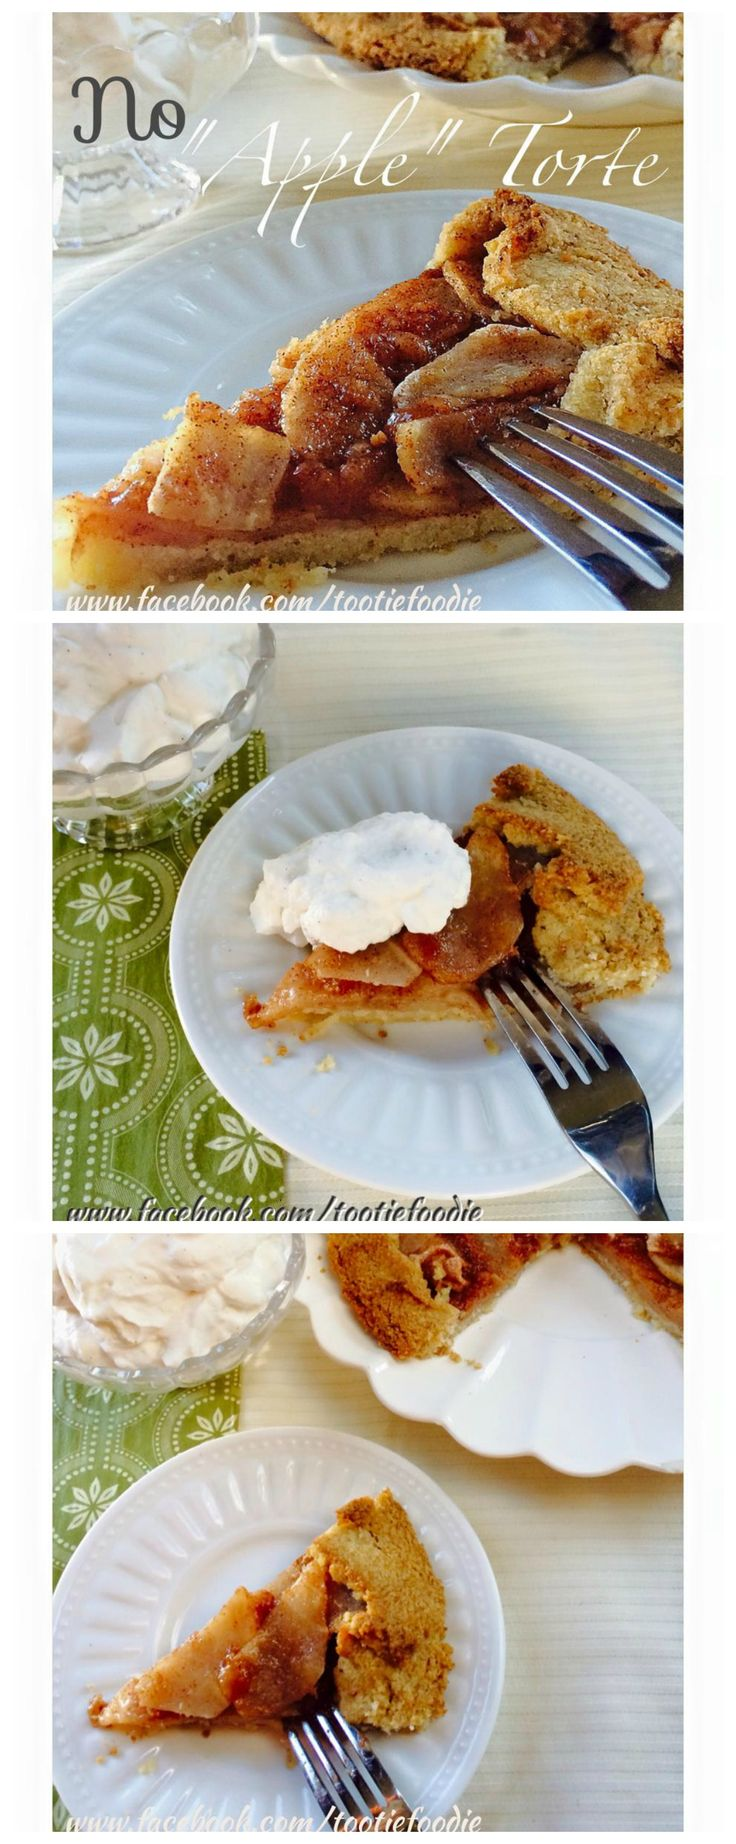 Low carb and gluten free mock apple torte. Super delicious. Made with jicama! Keto LCHF Banting Sugar Free Pie Recipe.